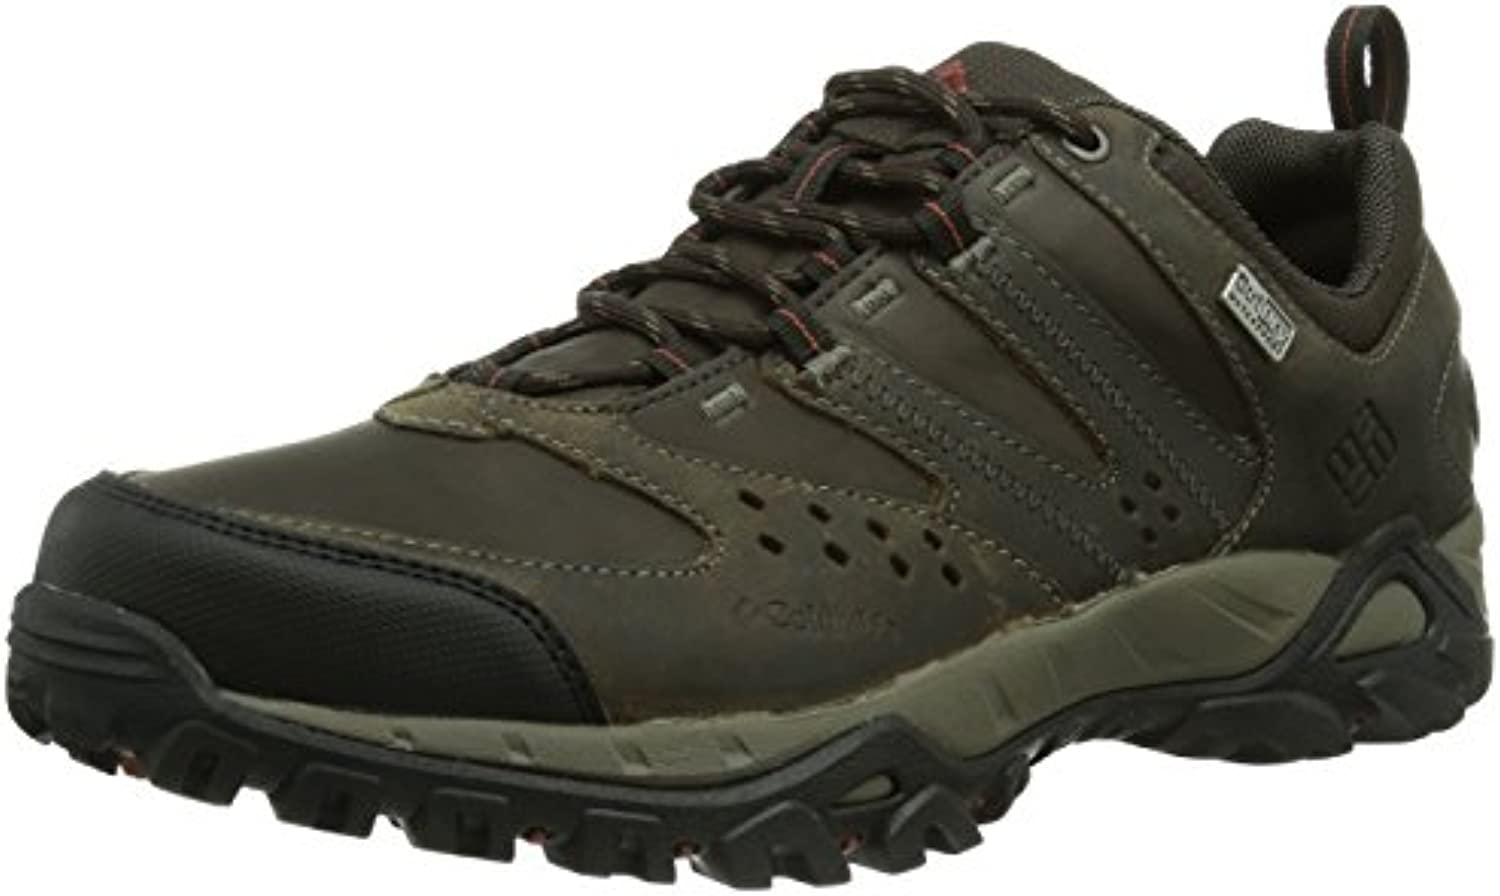 The North Face Terra GTX Mid Men's Walking Boots